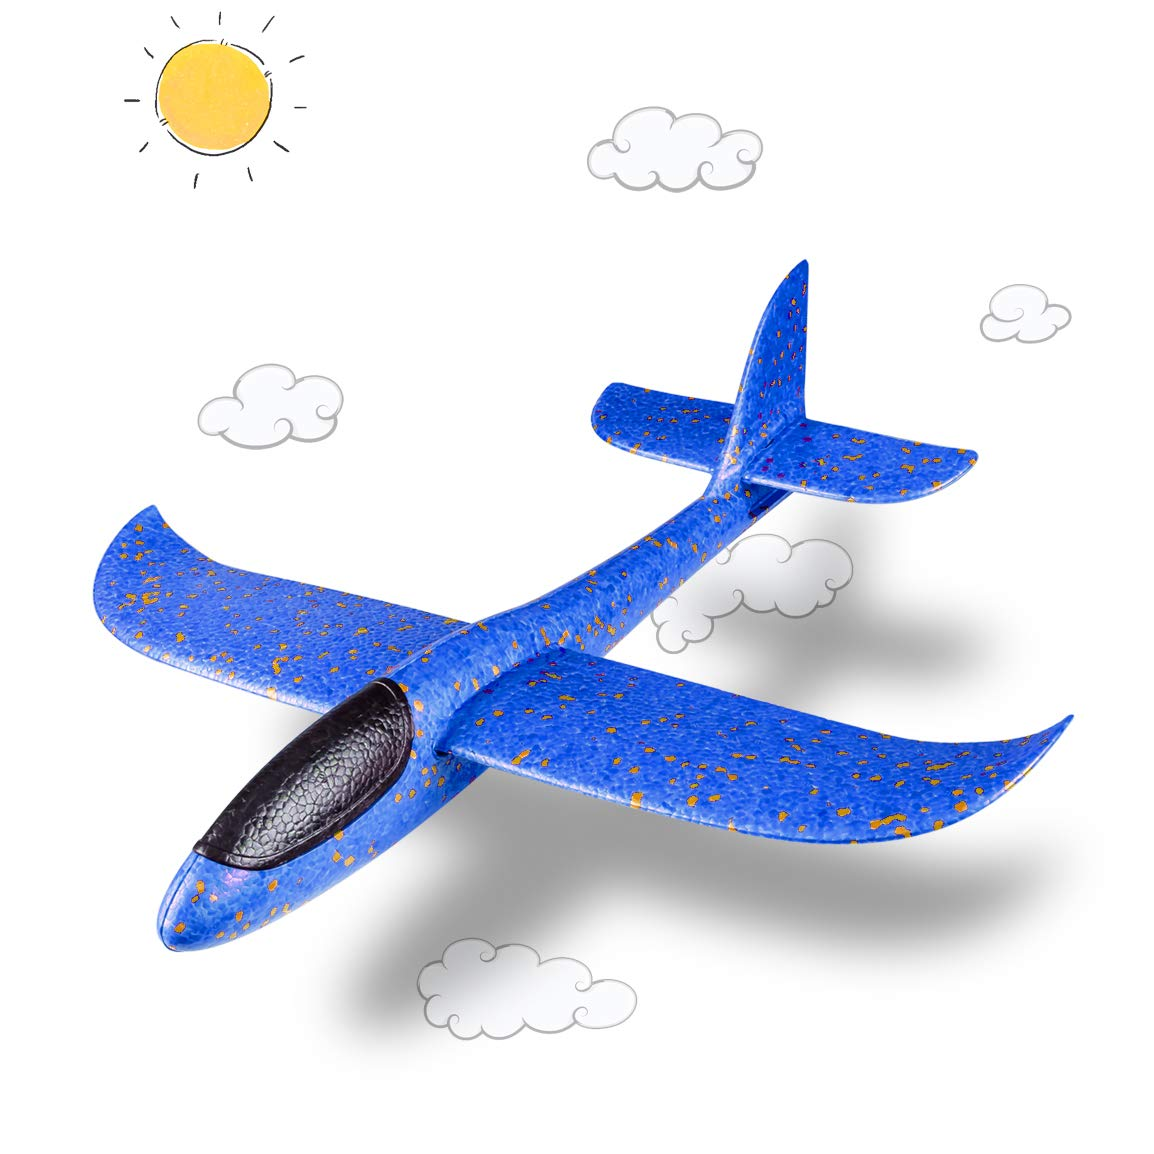 Refasy Foam Airplanes for Kids Children 18.9inch Gliders Airplane Toy Set Hand Throwing Challenging Model Foam Aircarft Two Flight Modes Best Outdoor Sport Flying Plane Toys for Kids Gift Blue